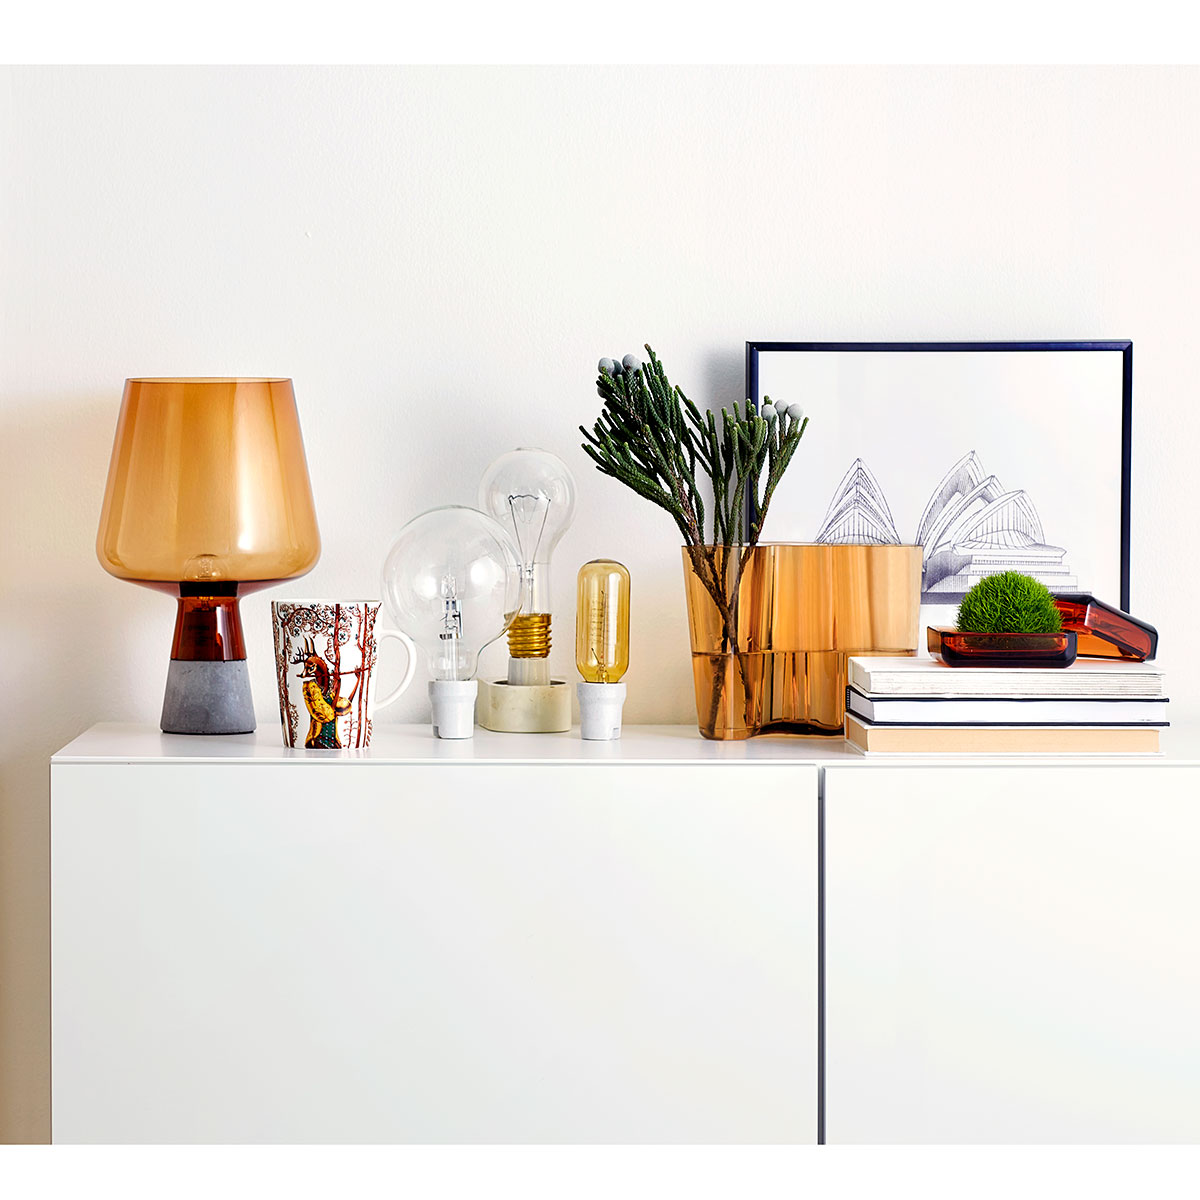 iittala aalto 6 1 4 desert vase iittala aalto desert vases. Black Bedroom Furniture Sets. Home Design Ideas